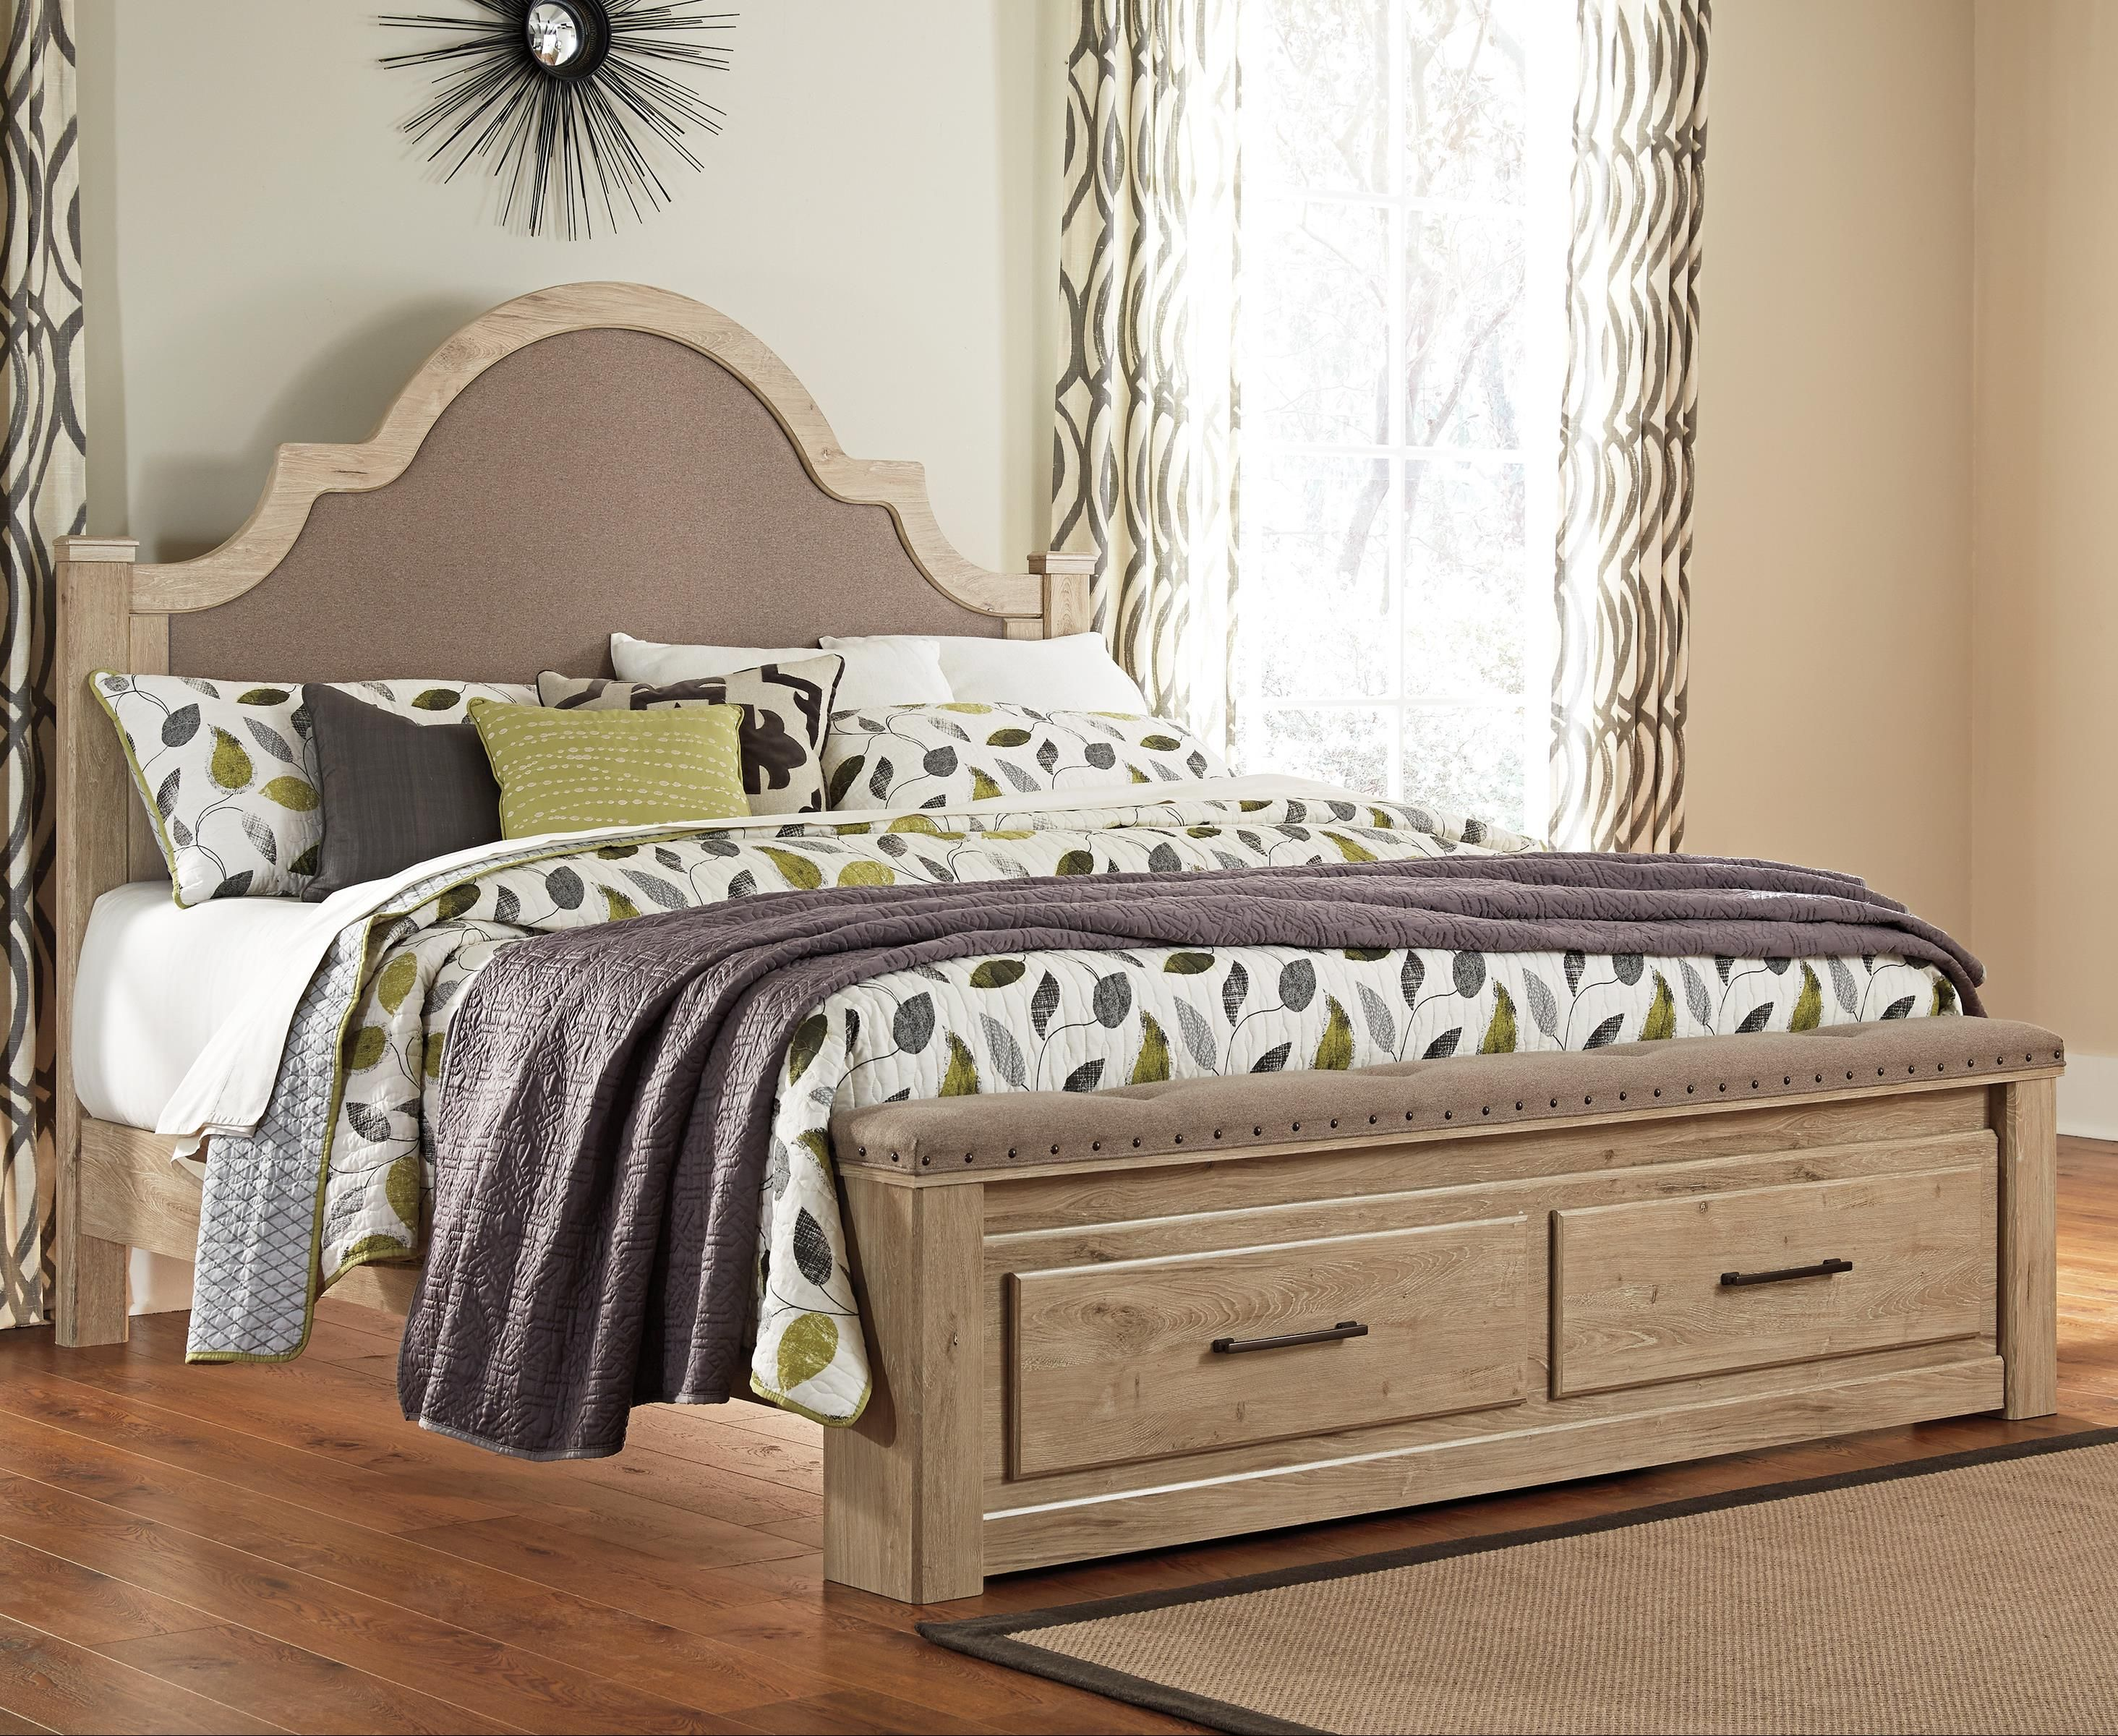 Annilyn King Upholstered Bed with Storage Footboard with